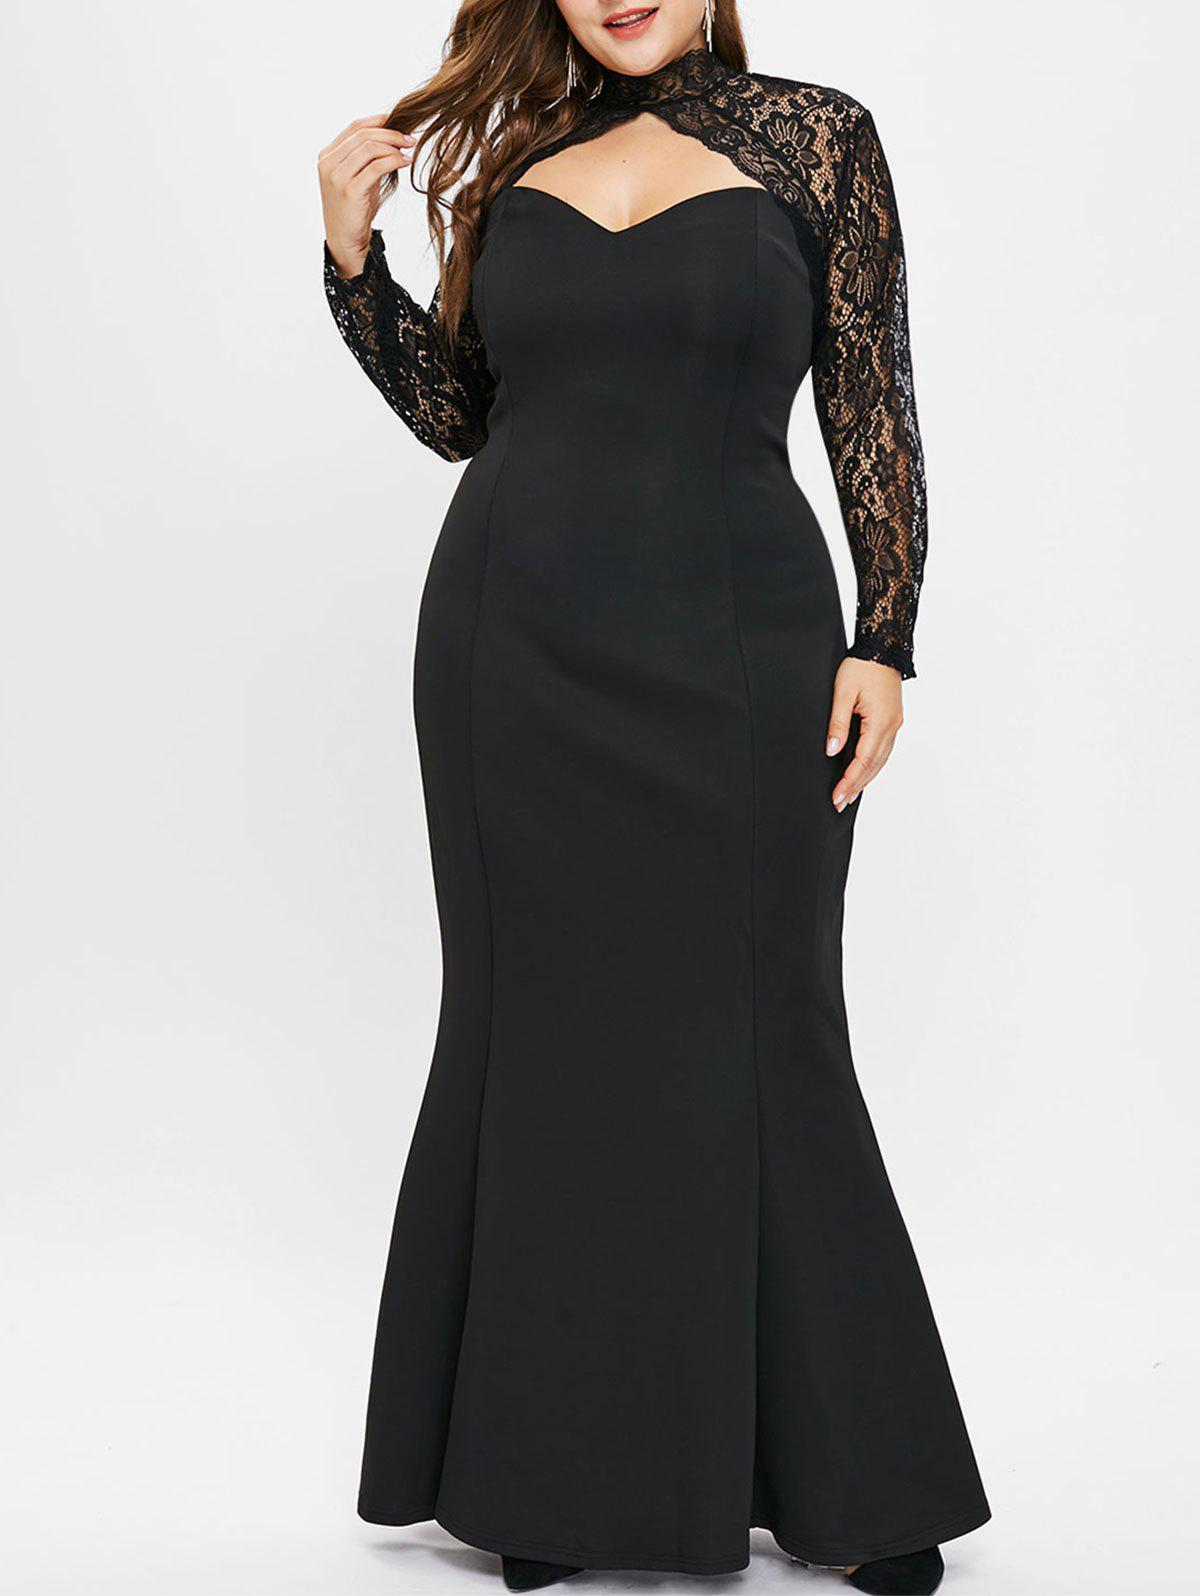 Store Cut Out Plus Size Lace Panel Mermaid Dress